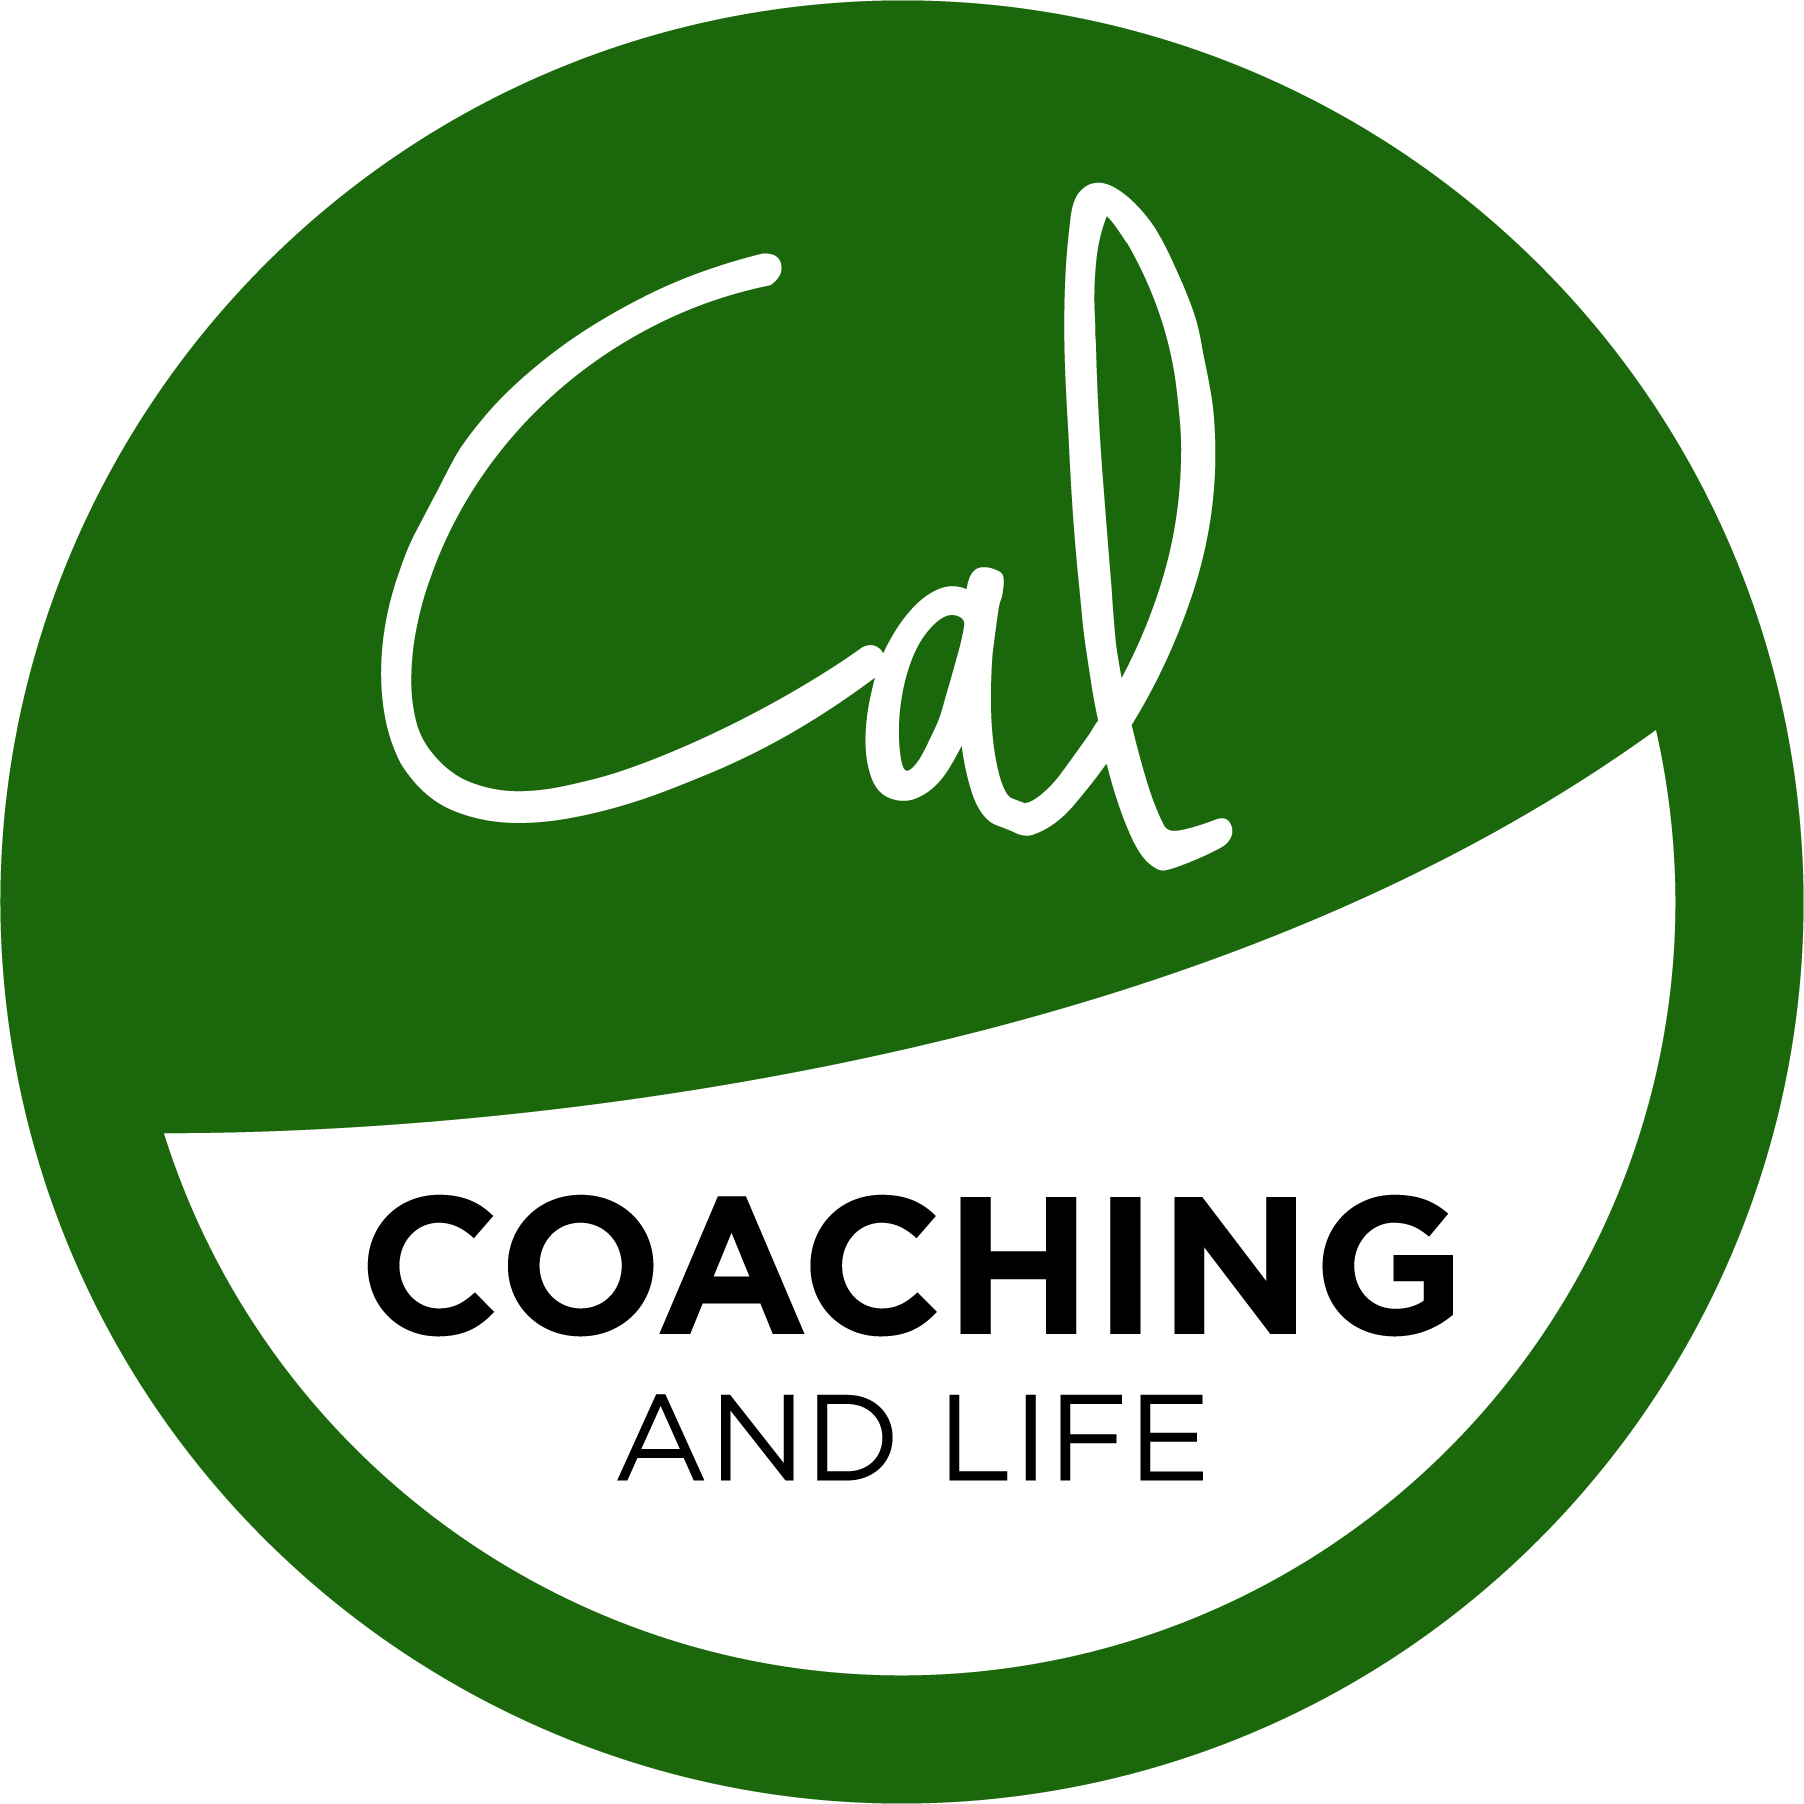 Coaching And Life